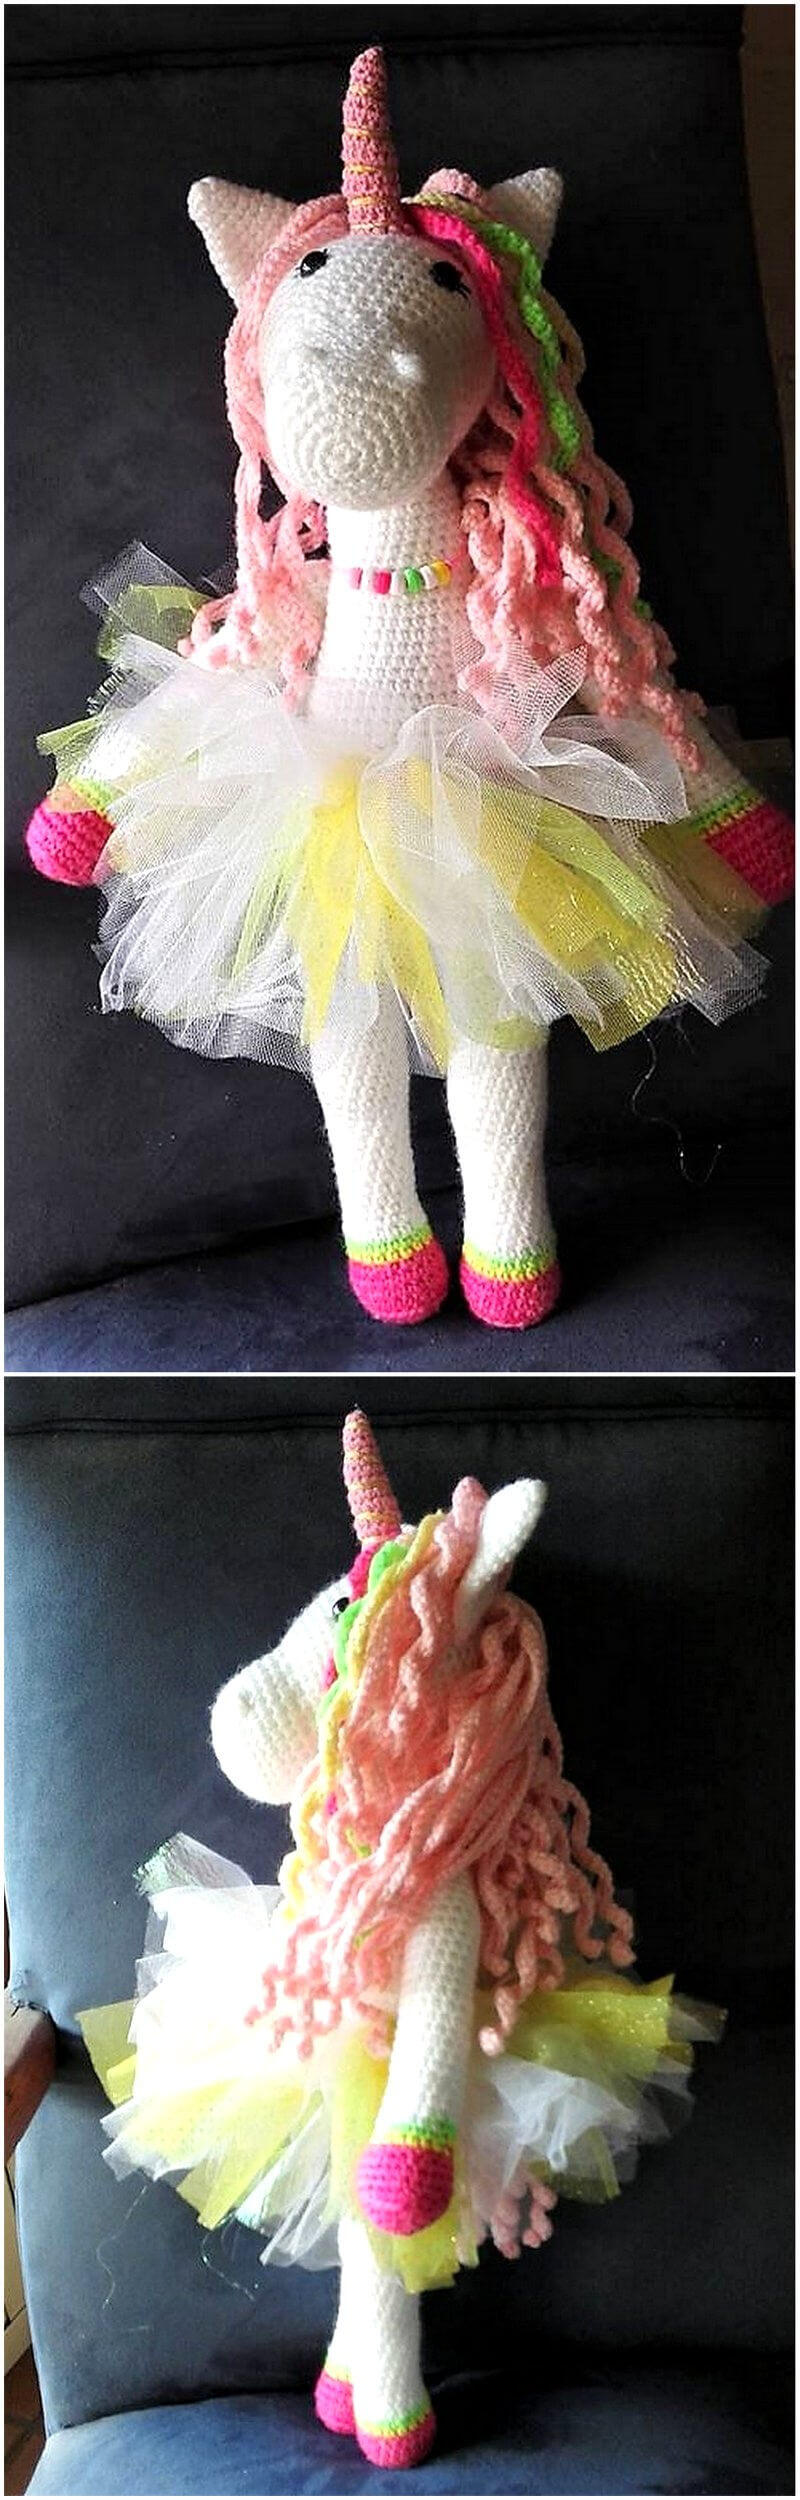 crochet amigurumi ideas 11